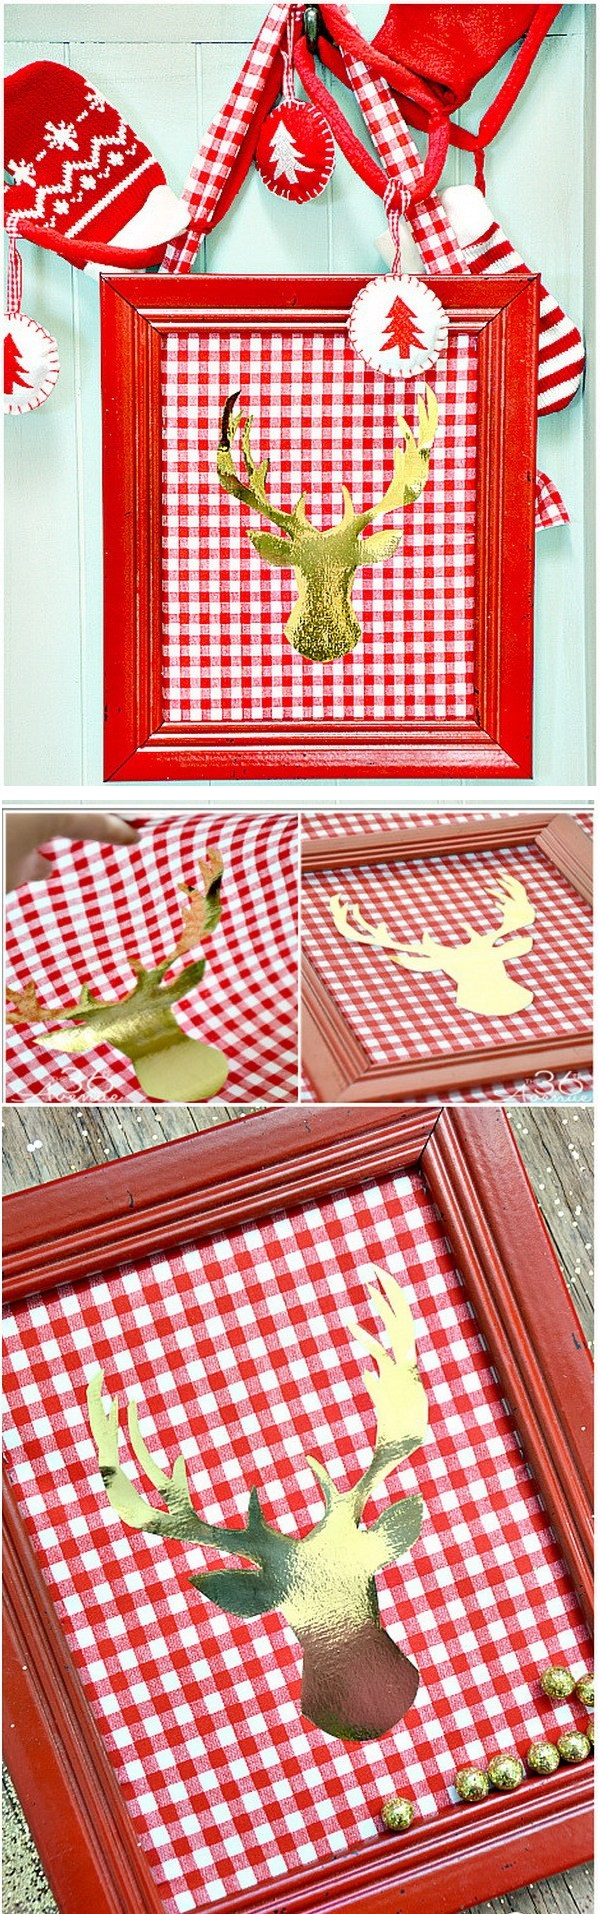 8.DIY Christmas Canvas Sign